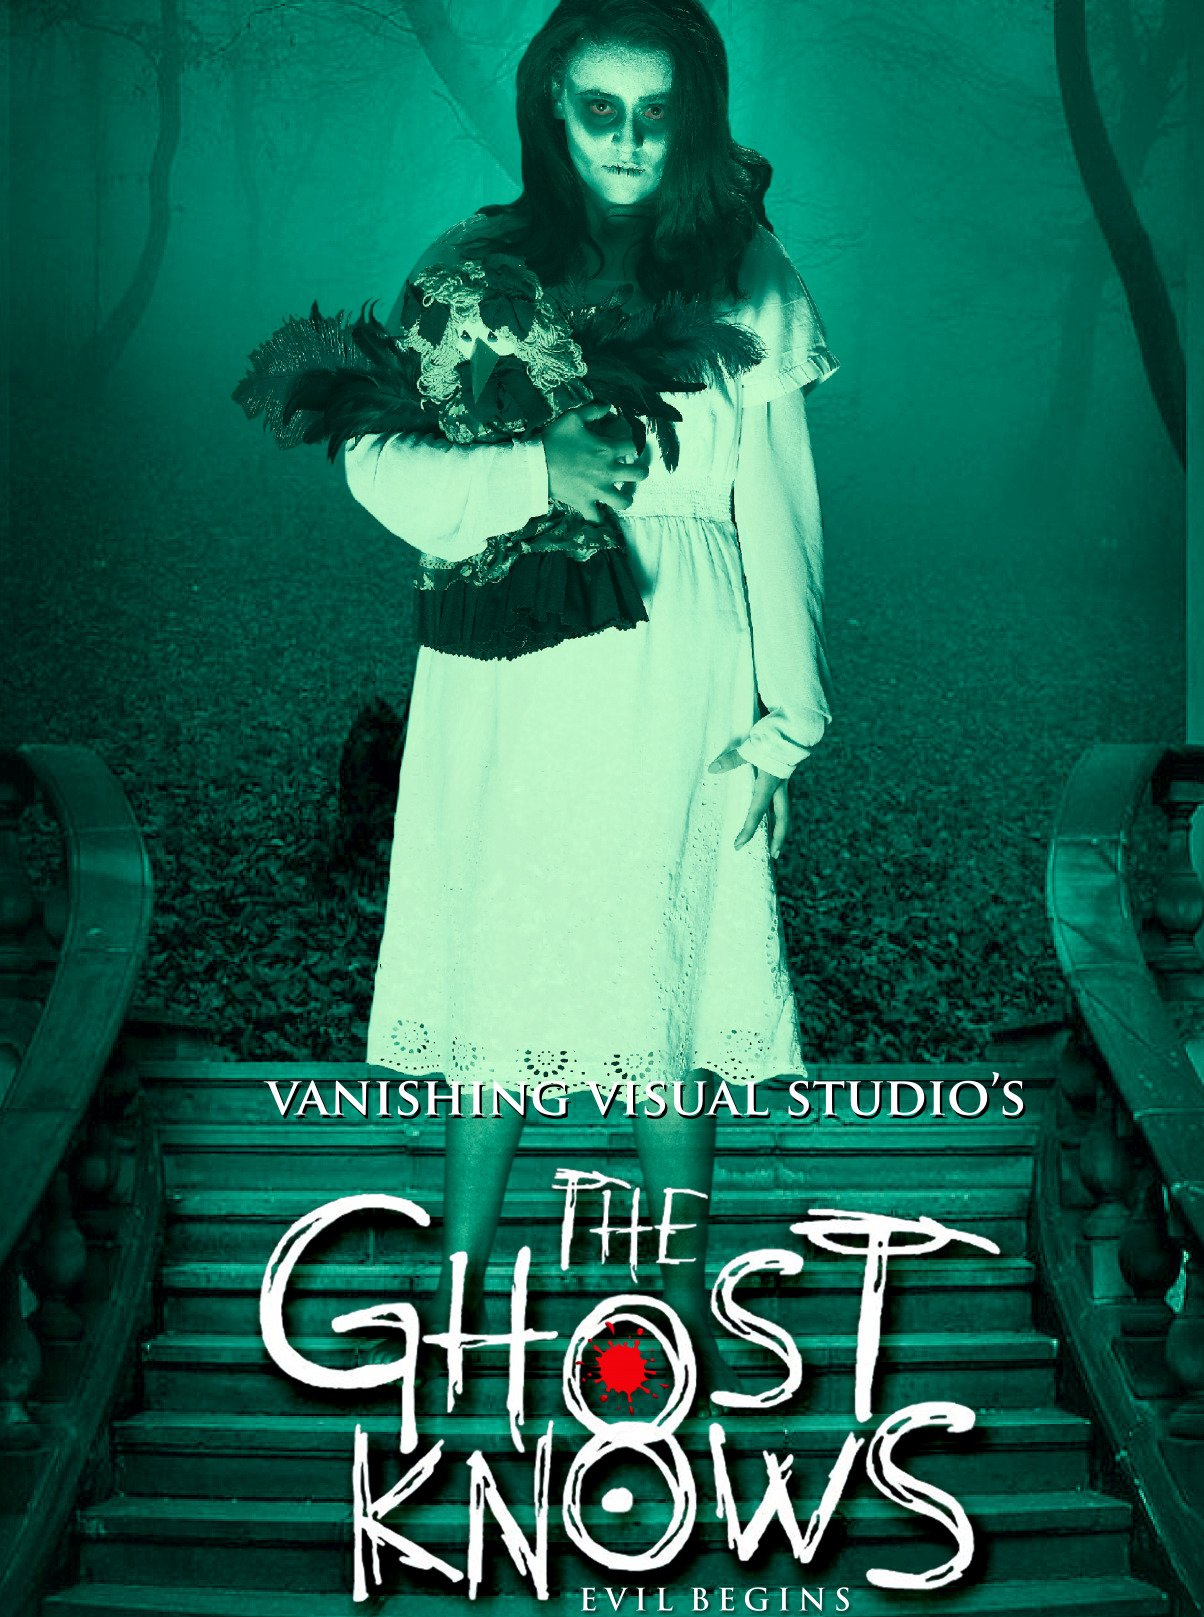 The Ghost Knows